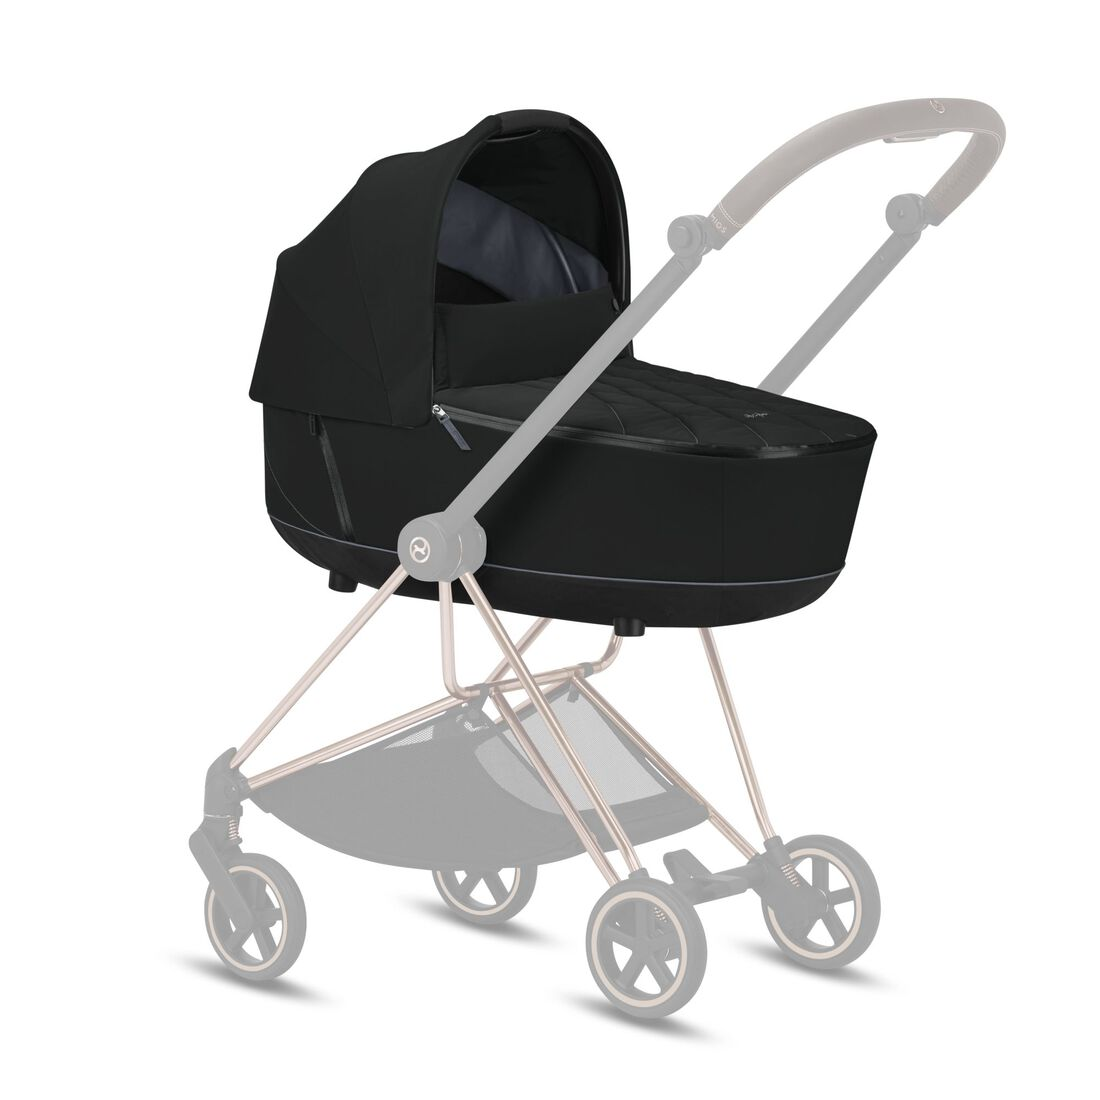 CYBEX Configure Mios Set: Frame, Lux Carry Cot, Cloud Z i-Size, Seat Pack in  large image number 6